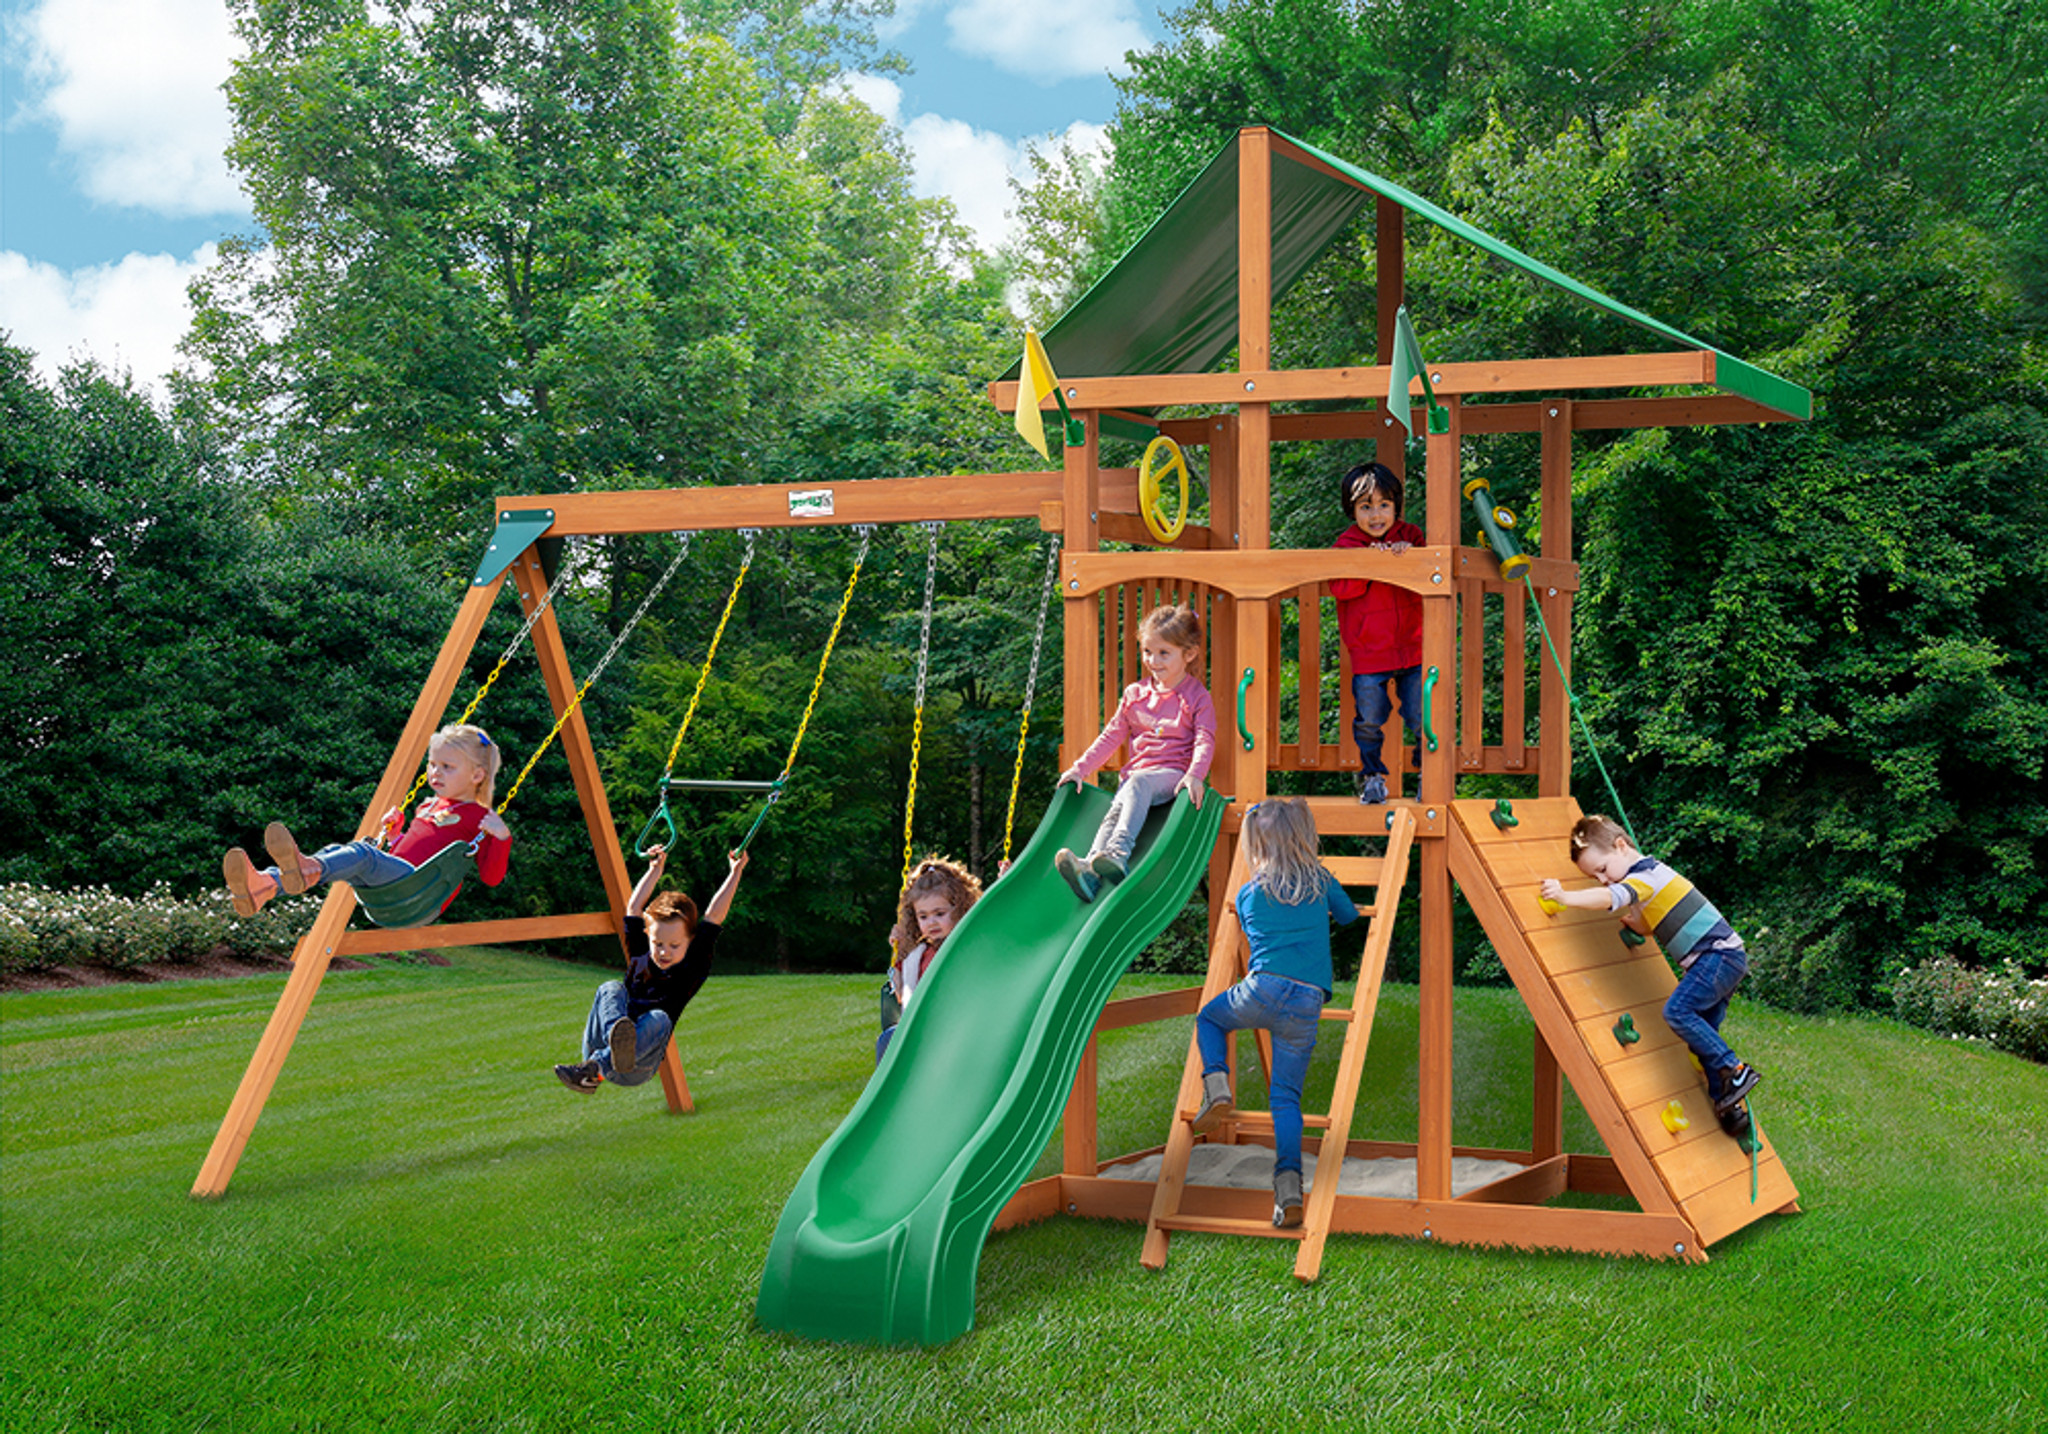 Outside view of Outing Play Set from Playnation